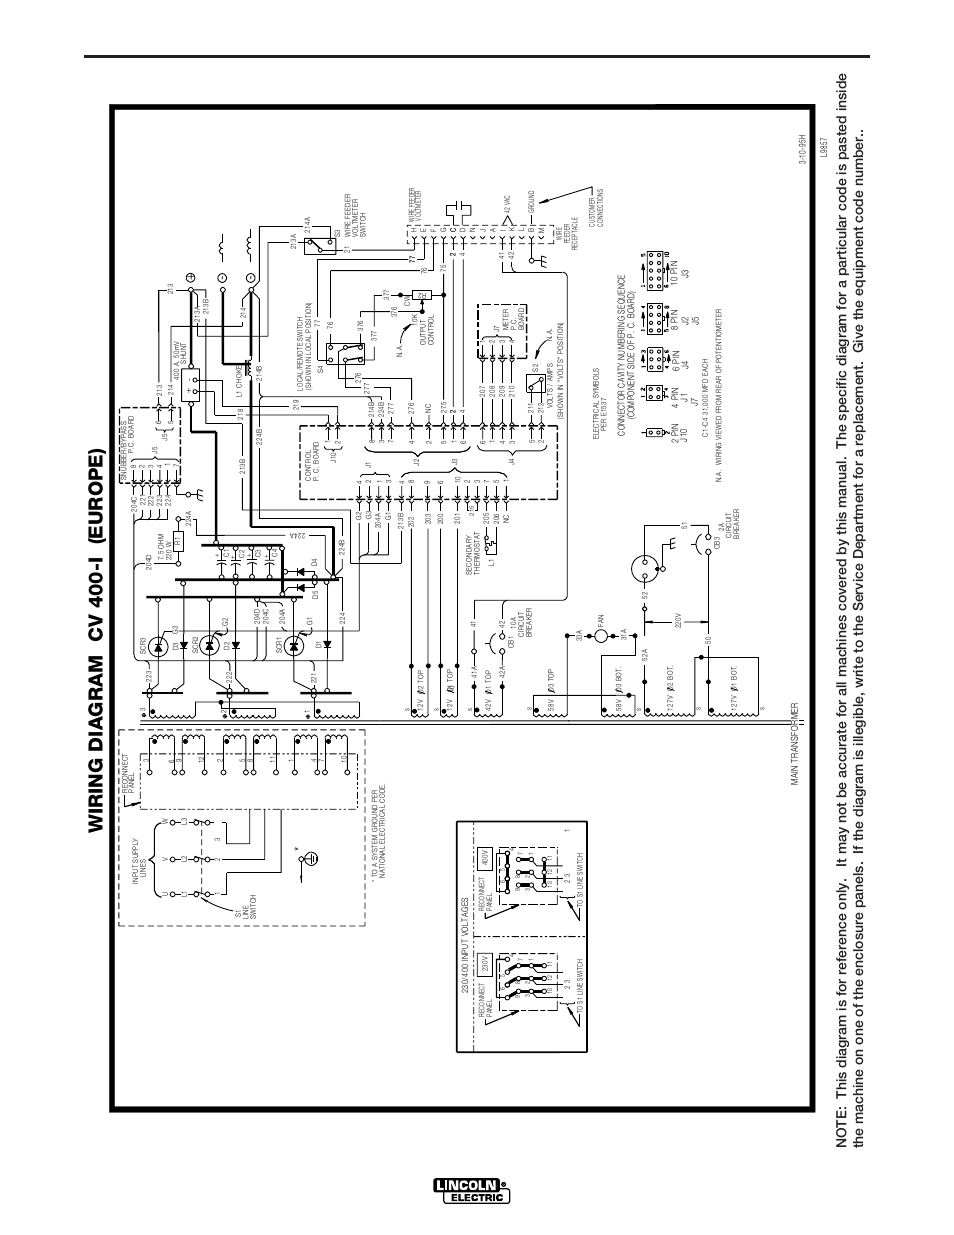 Diagrams     Cv400i     Wiring       diagram    cv 400i  europe       Lincoln    Electric IM501 IDEALARC CV400I